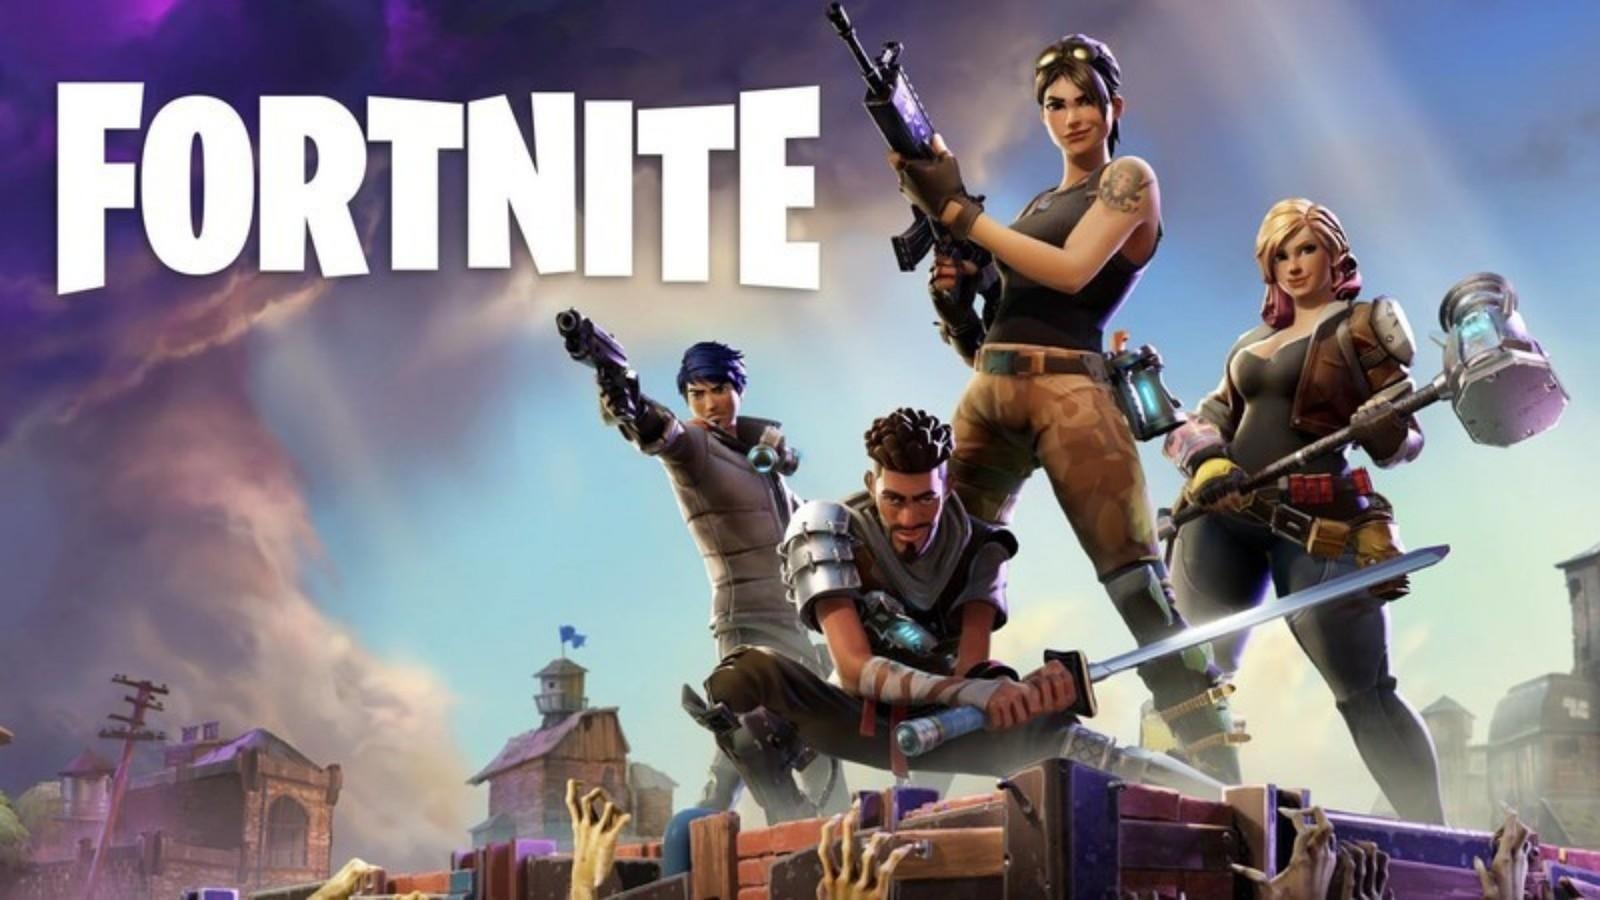 6 Tips To Help Your Kids Avoid The Fortnite Mobile Scam